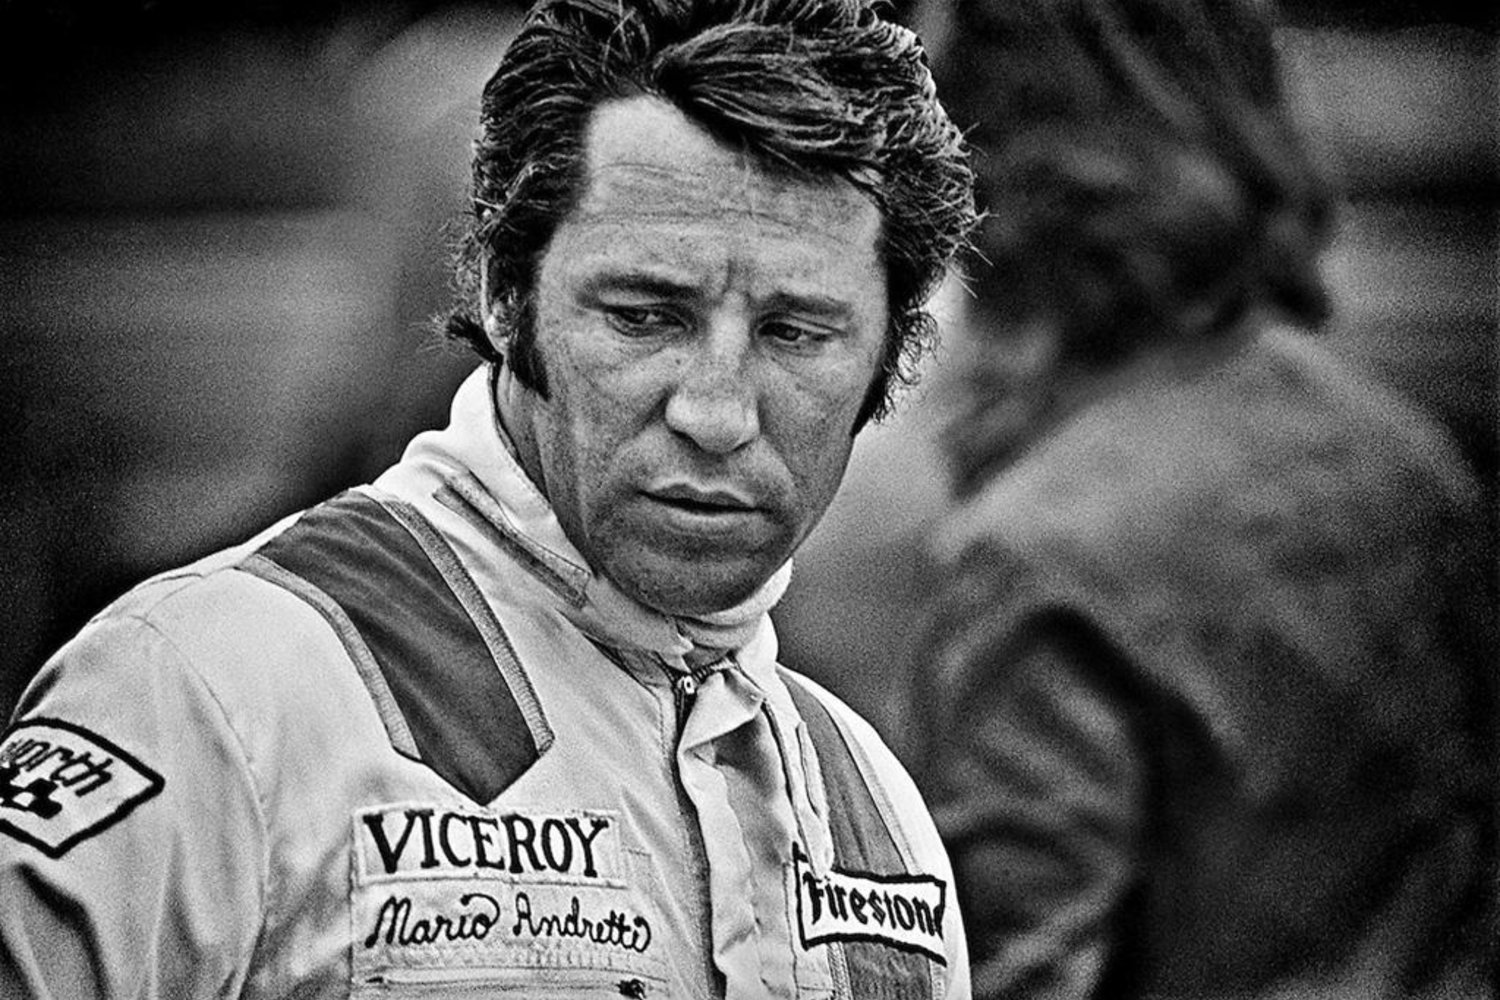 A pensive Mario Andretti searches for more speed from his F! Ferrari 321B2 at the 1972 United States Grand Prix.